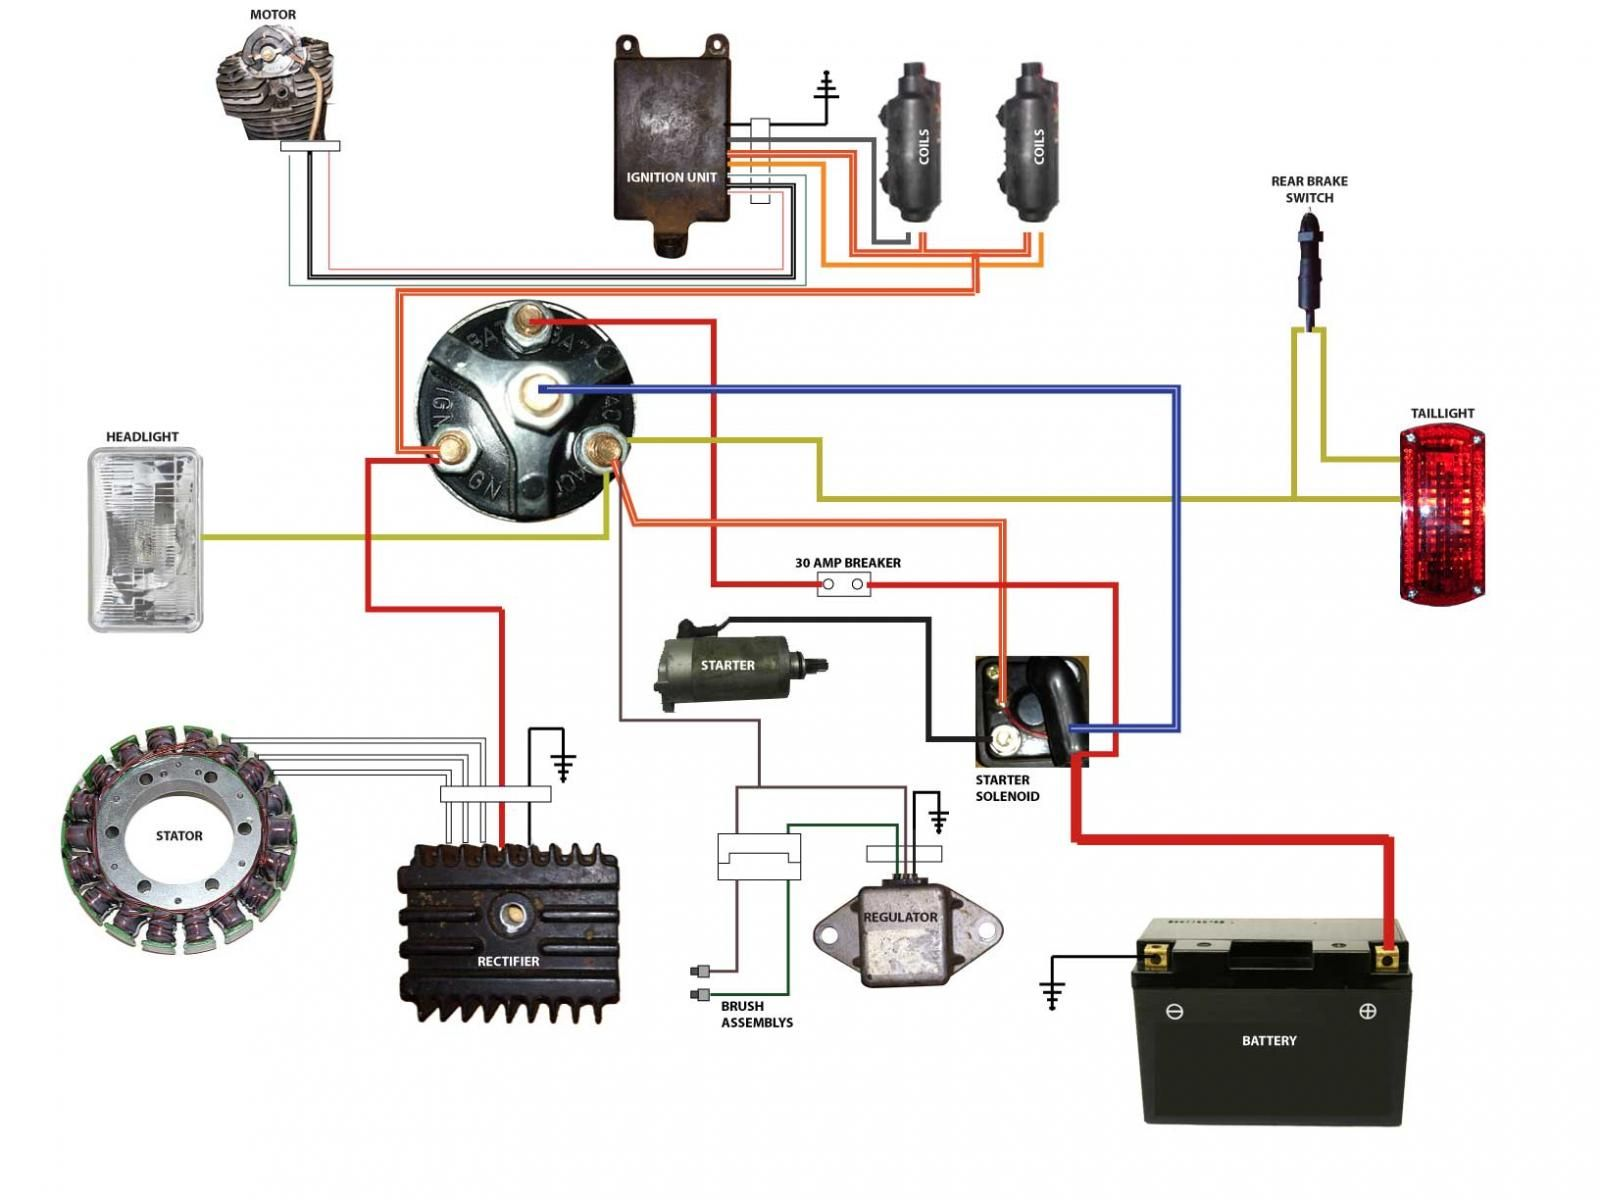 Simplified Wiring Diagram For Xs400 Cafe Projects To Try Basic Ignition Harley Davidson